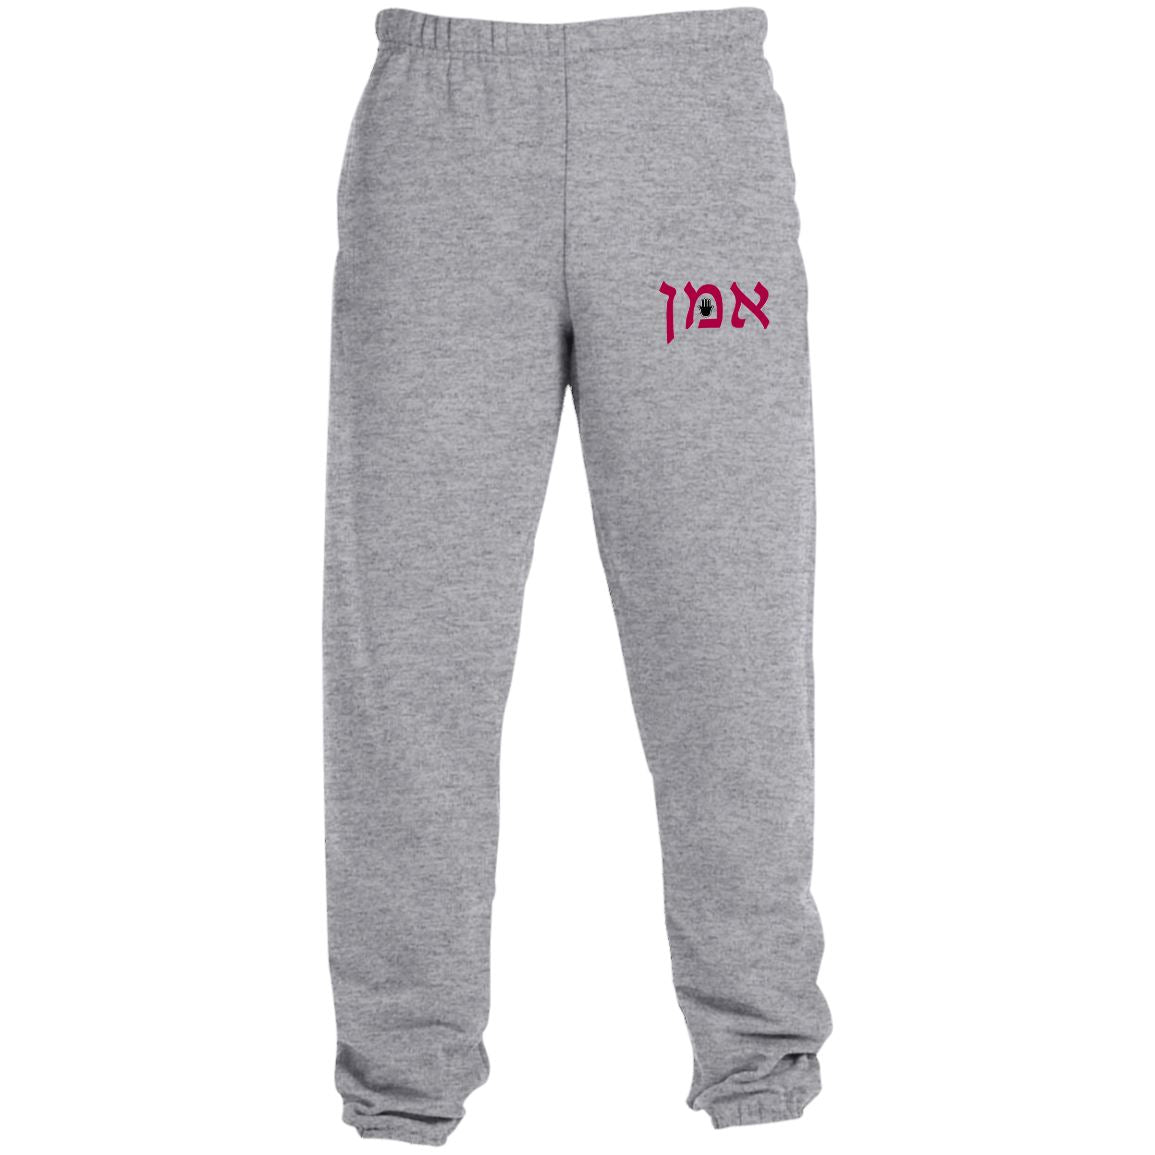 Amen Hamsa Blessed Sweatpants with Pockets Pants Oxford Grey S